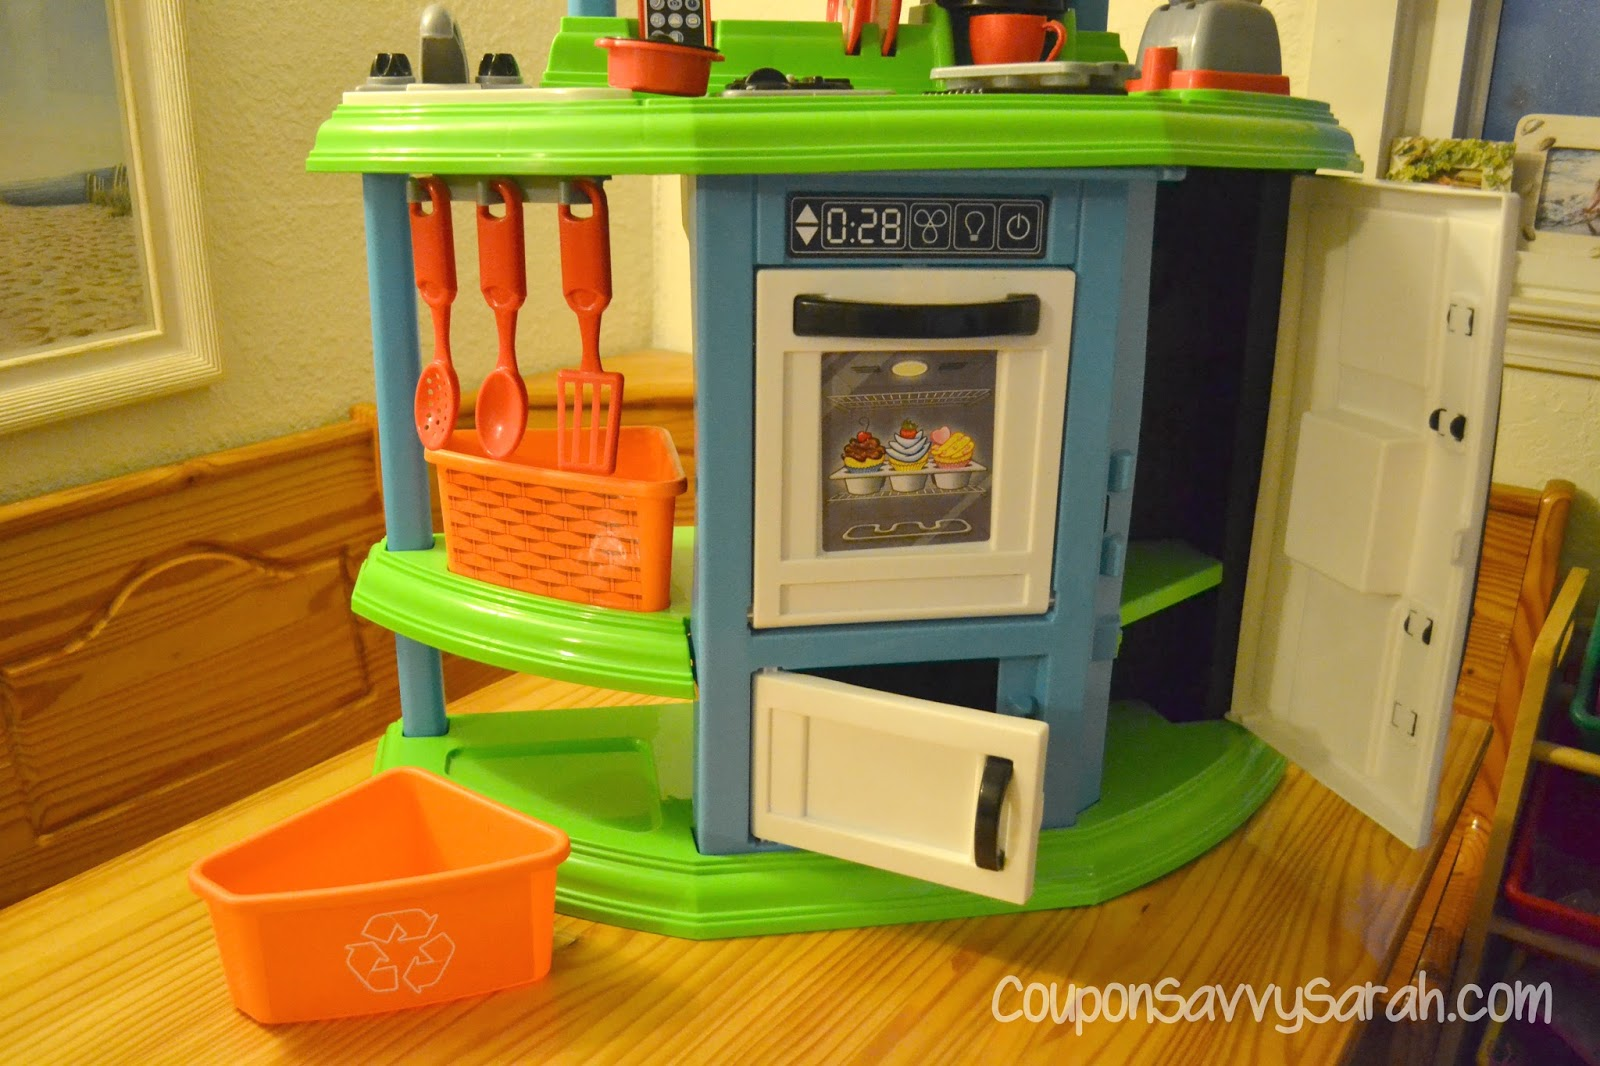 Coupon Savvy Sarah Get Cooking With The Cozy Comforts Kitchen From American Plastic Toys